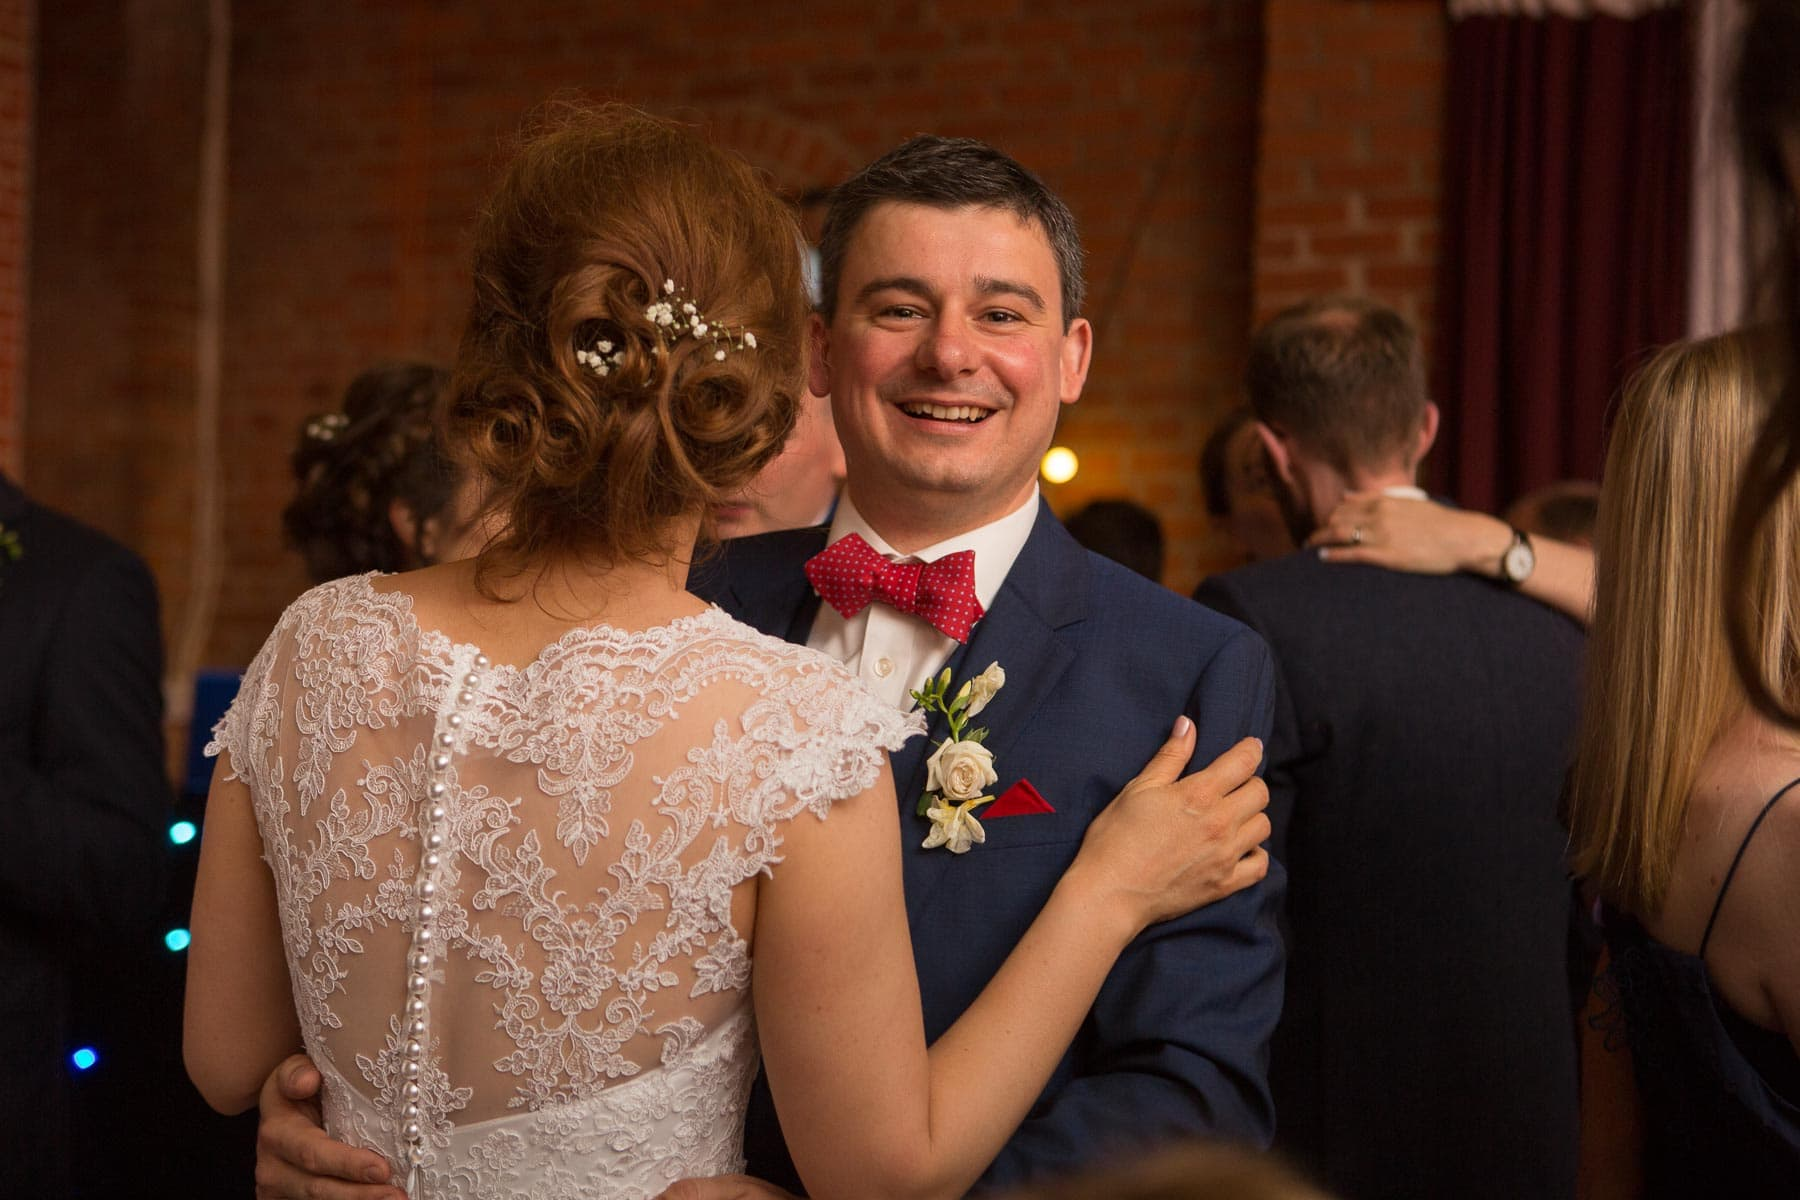 Groom smiles as he holds his bride on the dancefloor